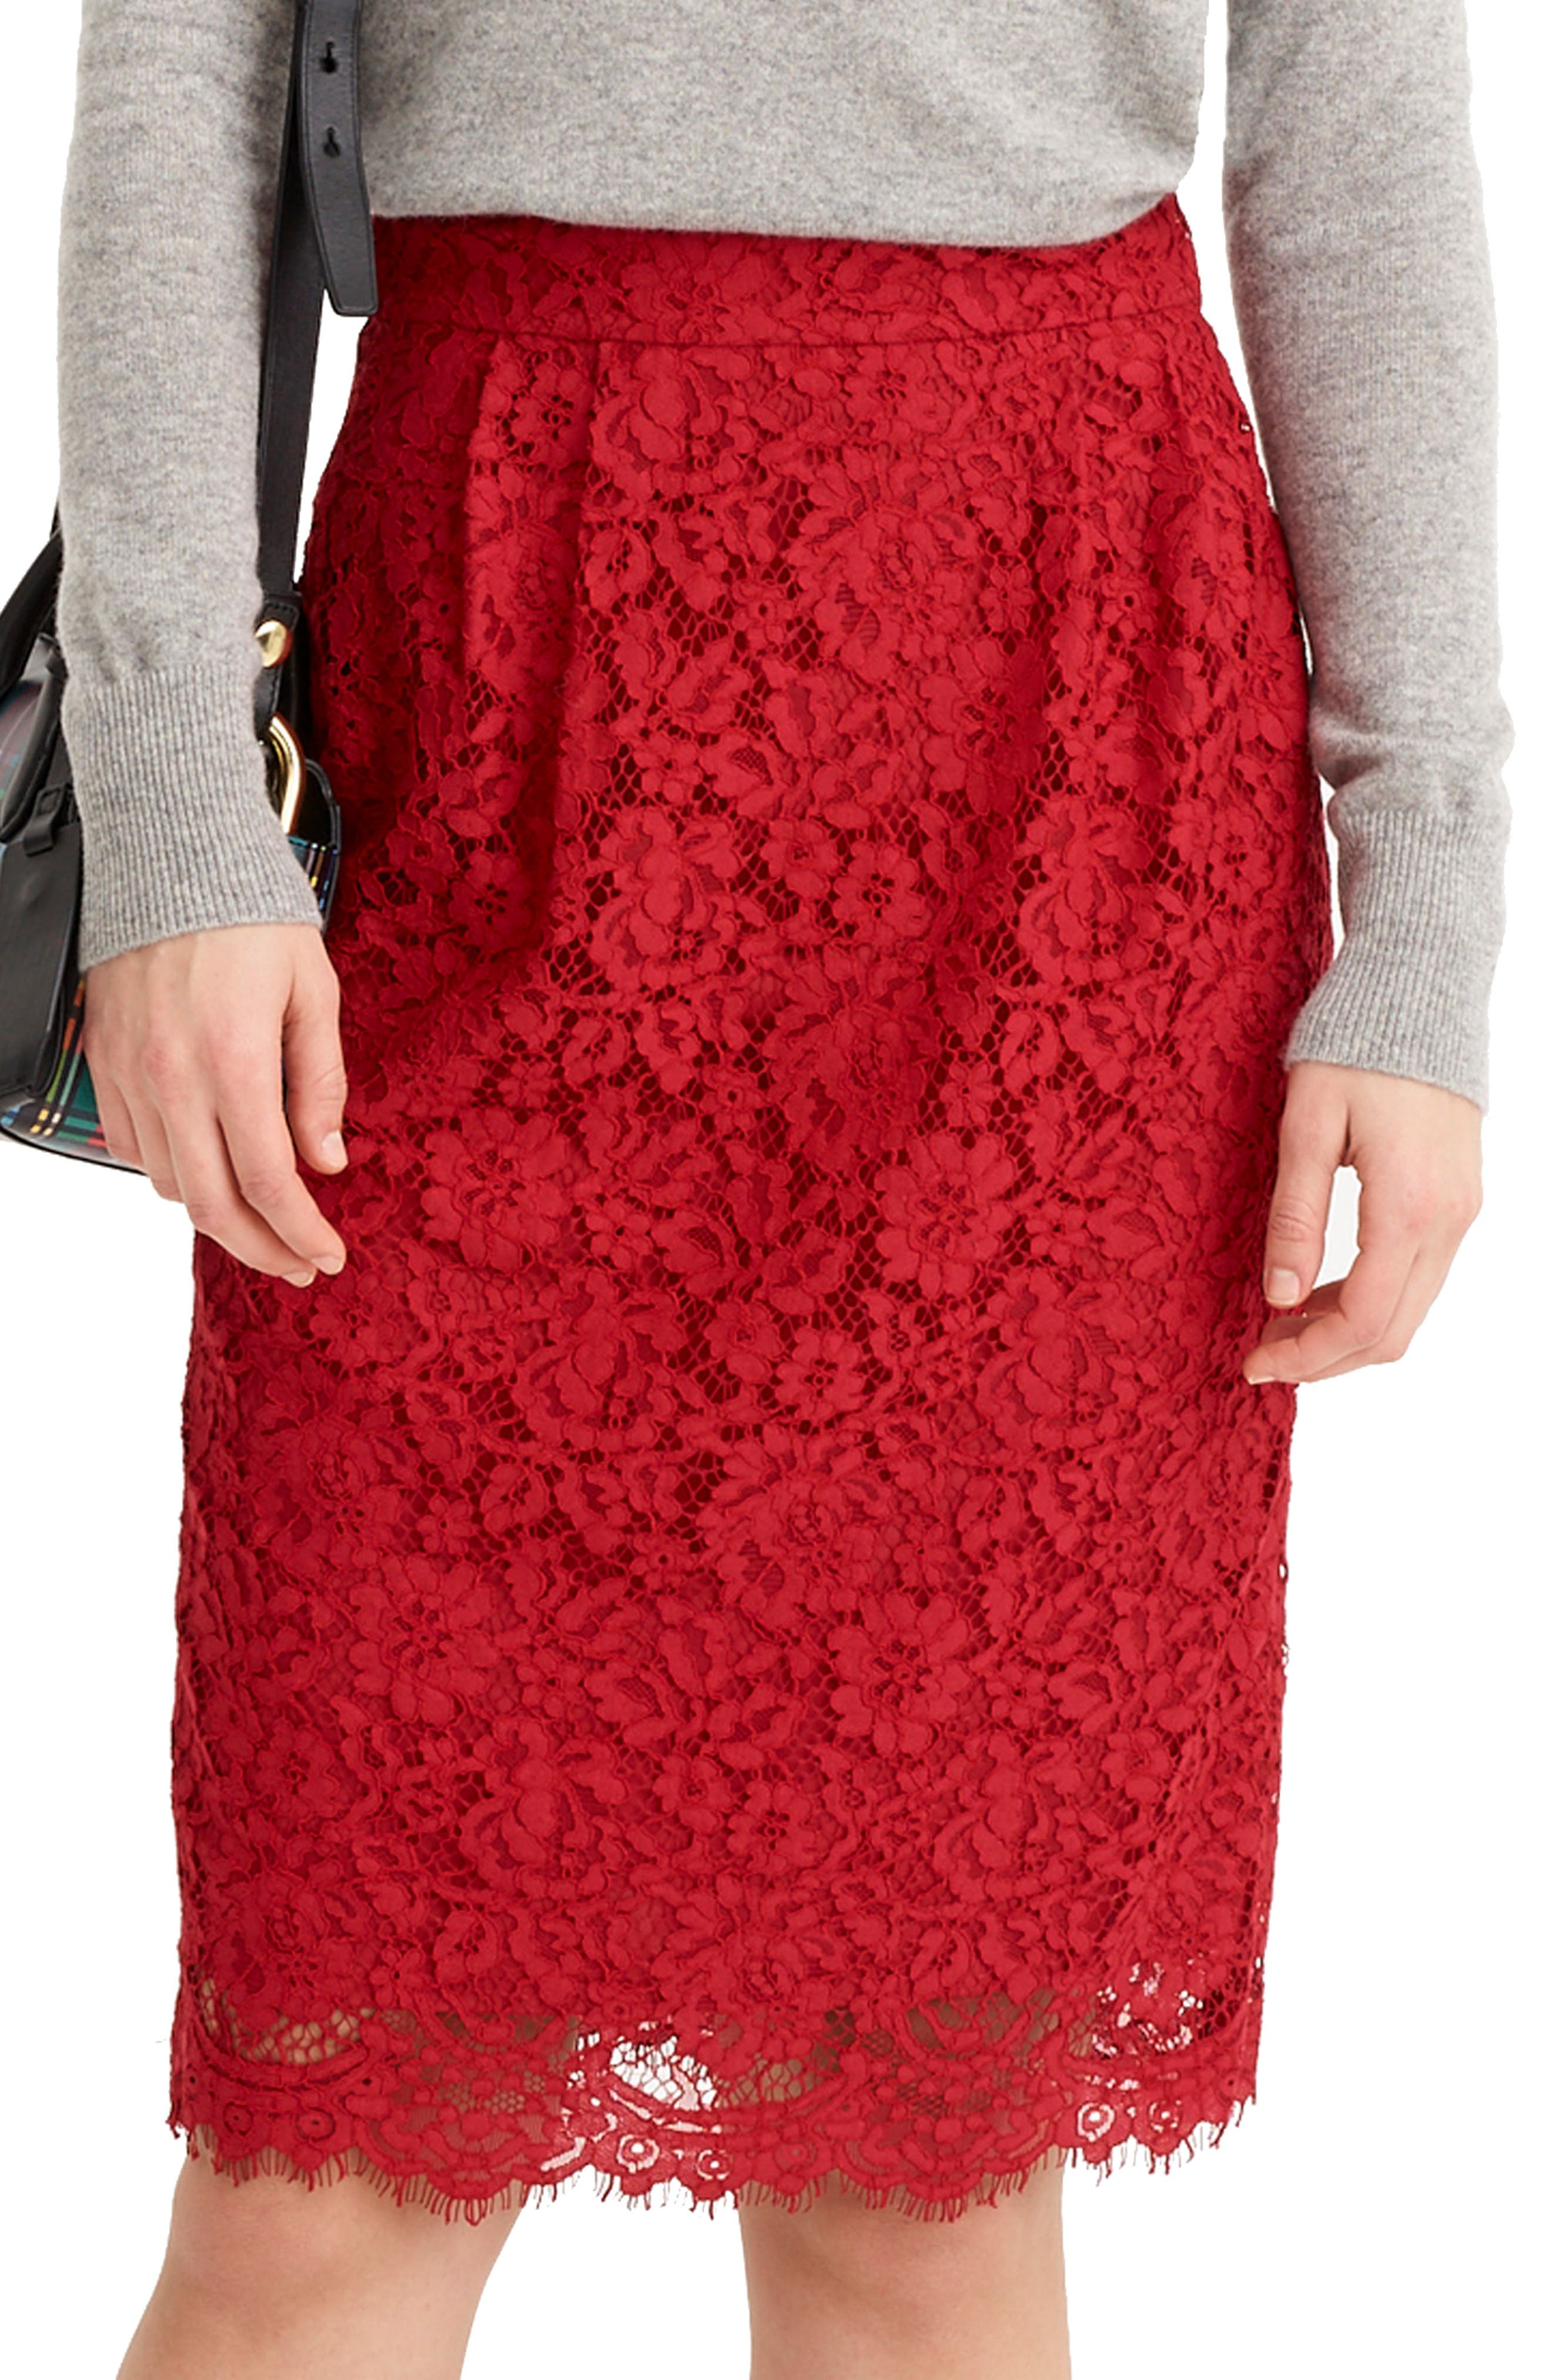 J.crew Lace Pintuck Pencil Skirt, Red